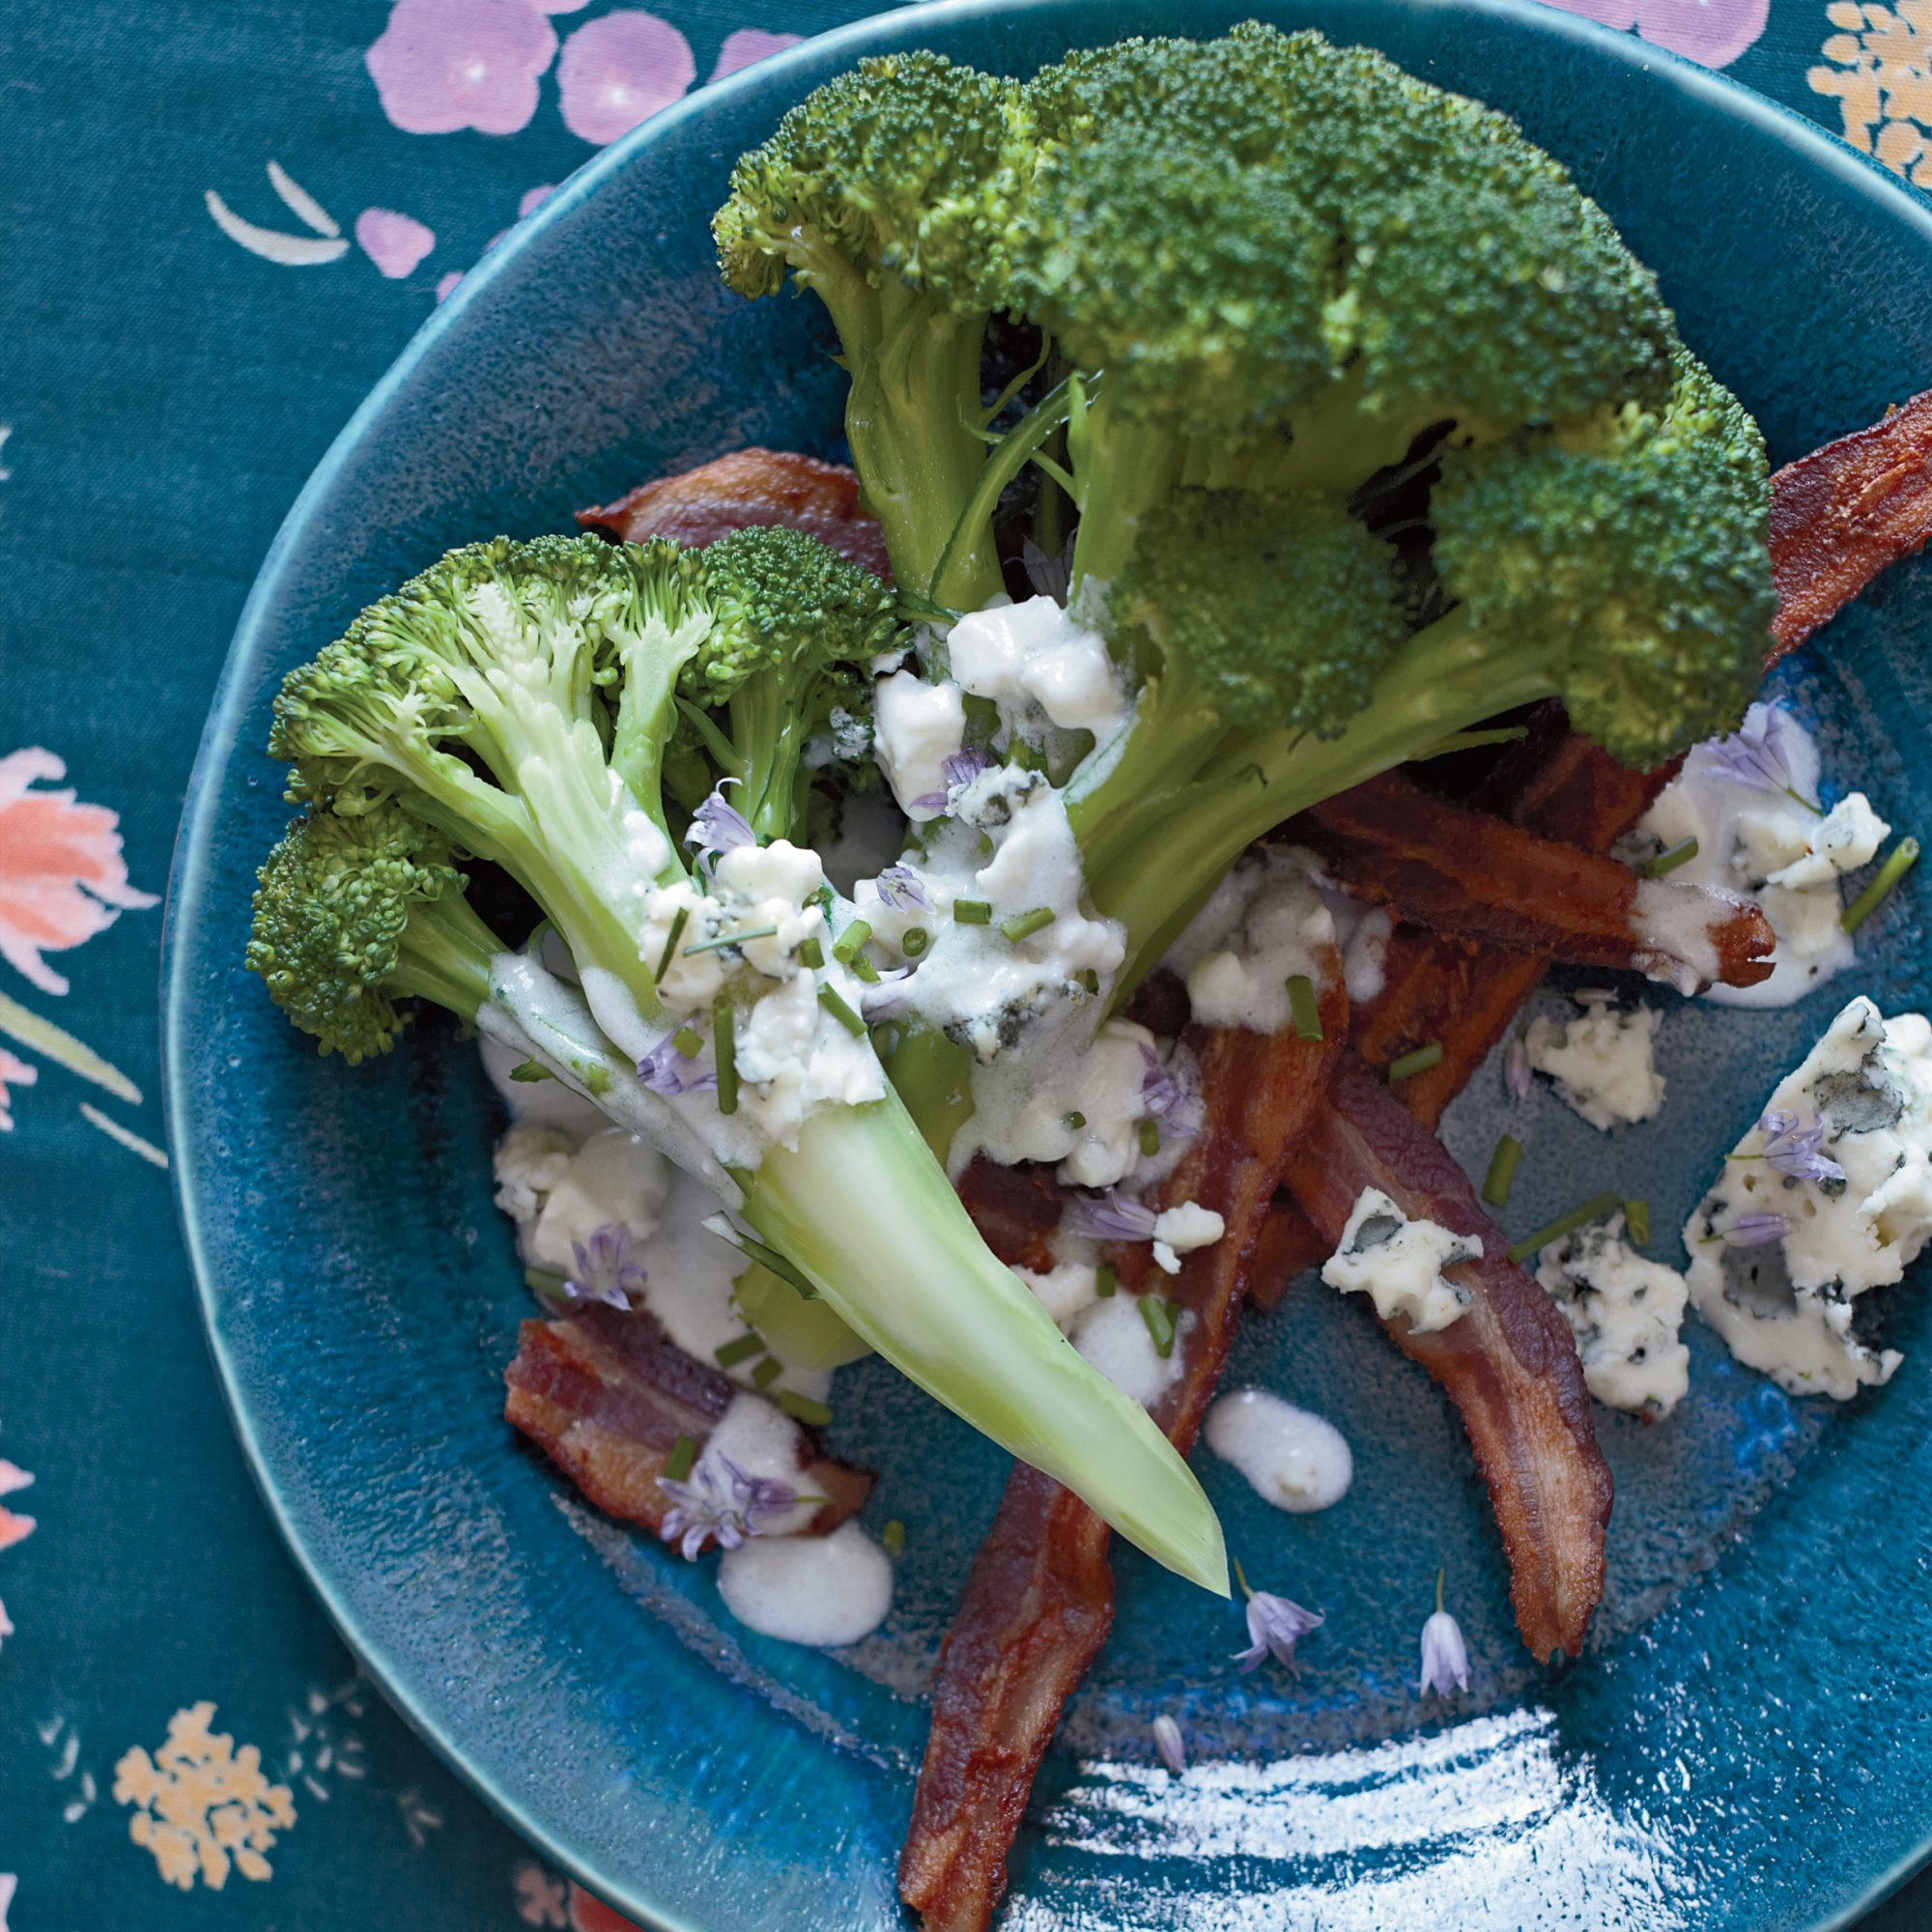 201109-r-broccoli-with-bacon-blue-cheese-and-ranch-dressing.jpg